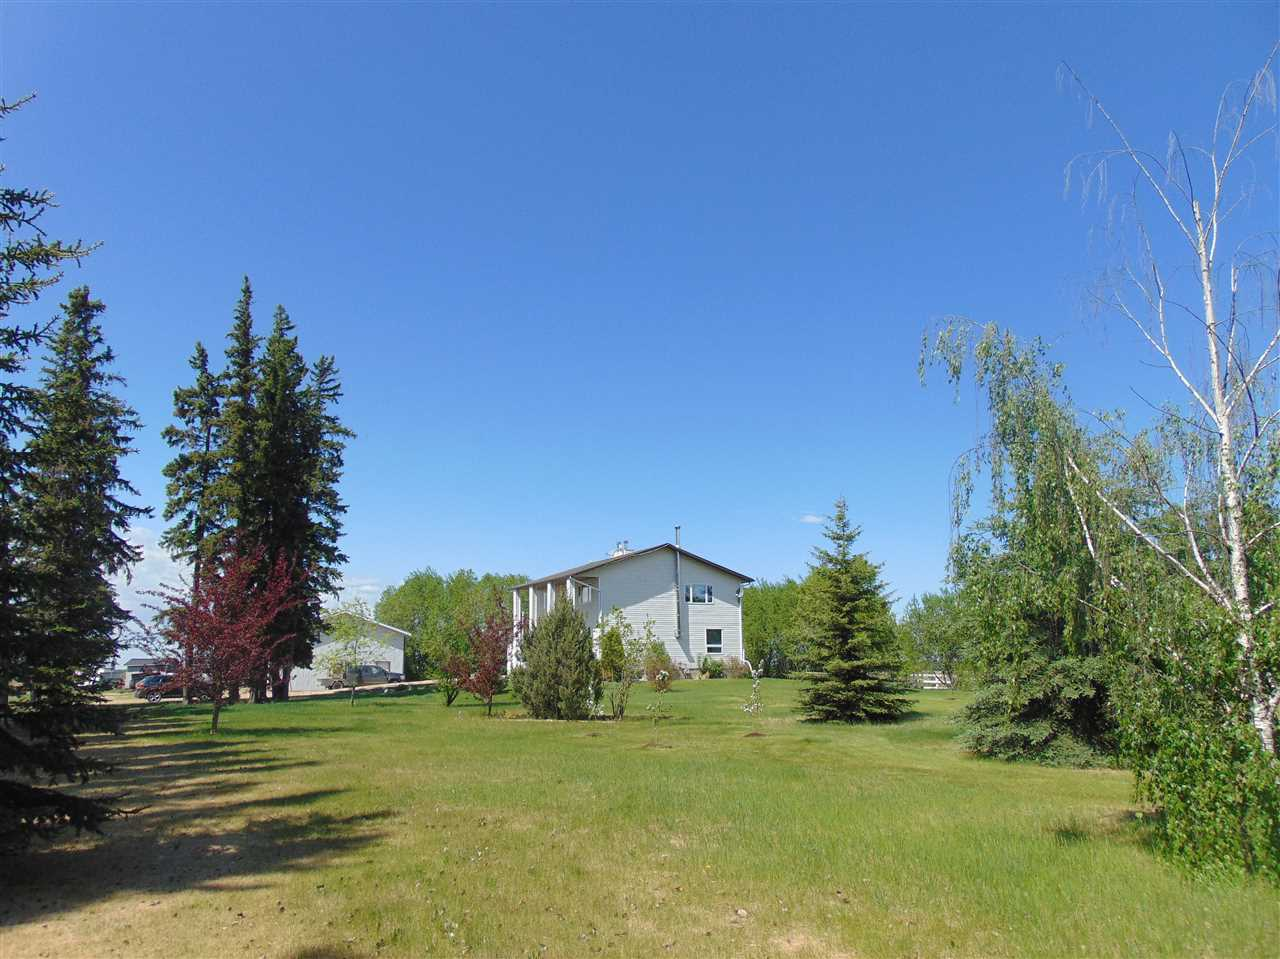 Photo 23: 61124 Rg Rd 253: Rural Westlock County House for sale : MLS(r) # E4065150